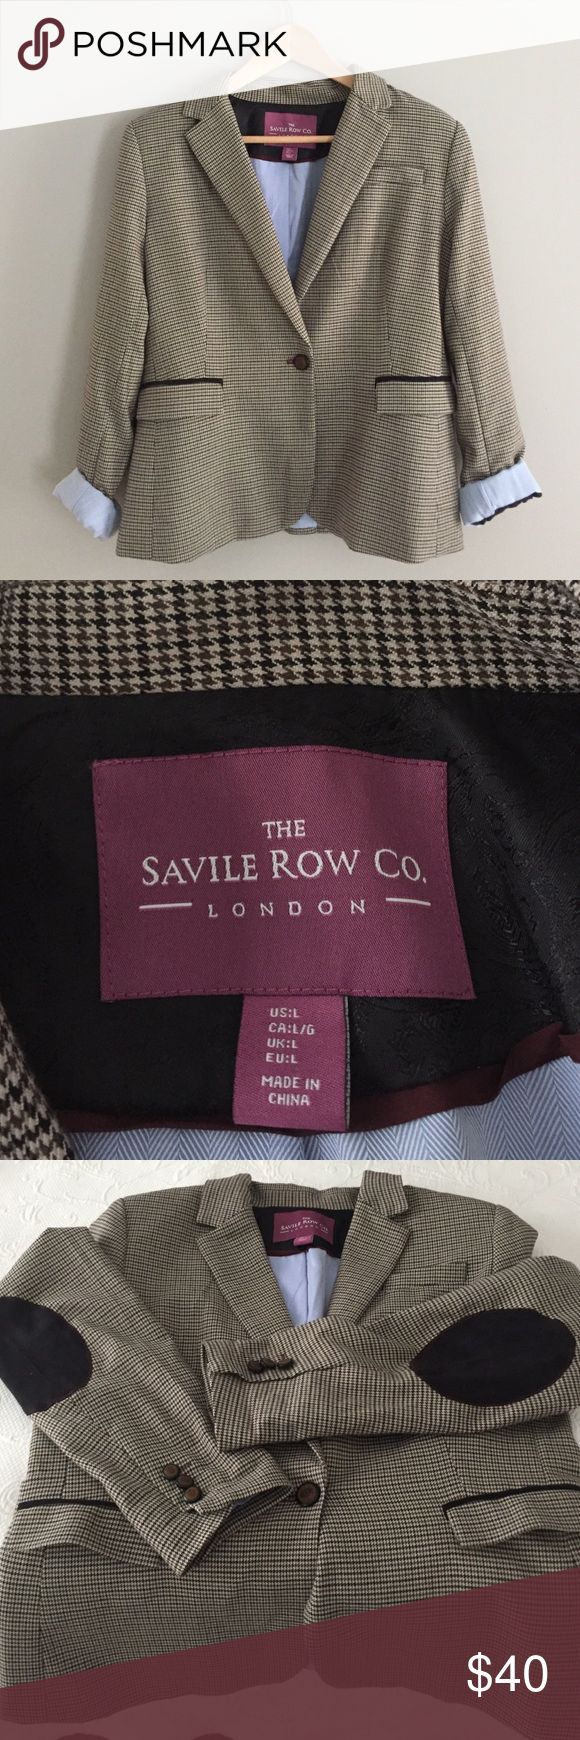 Brit Style Fall/Winter Blazer Classic & fun blazer in a small houndstooth  & a modern twist . Lining is a light blue Oxford material  (looks like a light denim) elbow patches and buttons on the arms - super versatile, fun yet classic and like new!!!! Saville Row CO. London Jackets & Coats Blazers